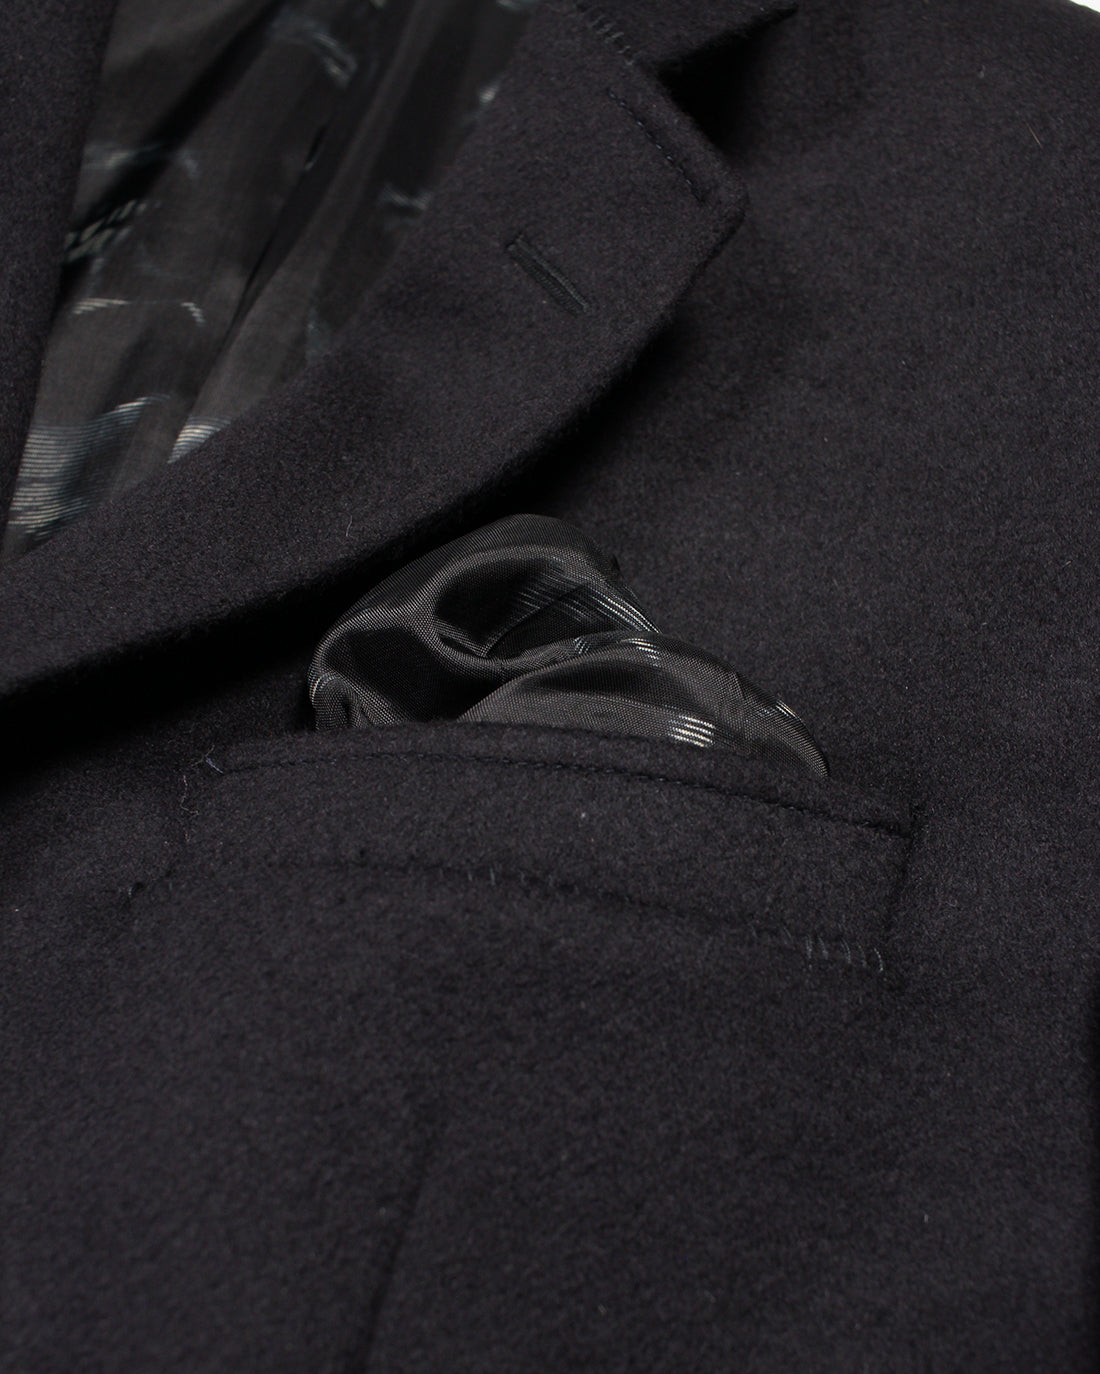 Dark Navy Cash Flannel Reginald Jacket - Holland Esquire